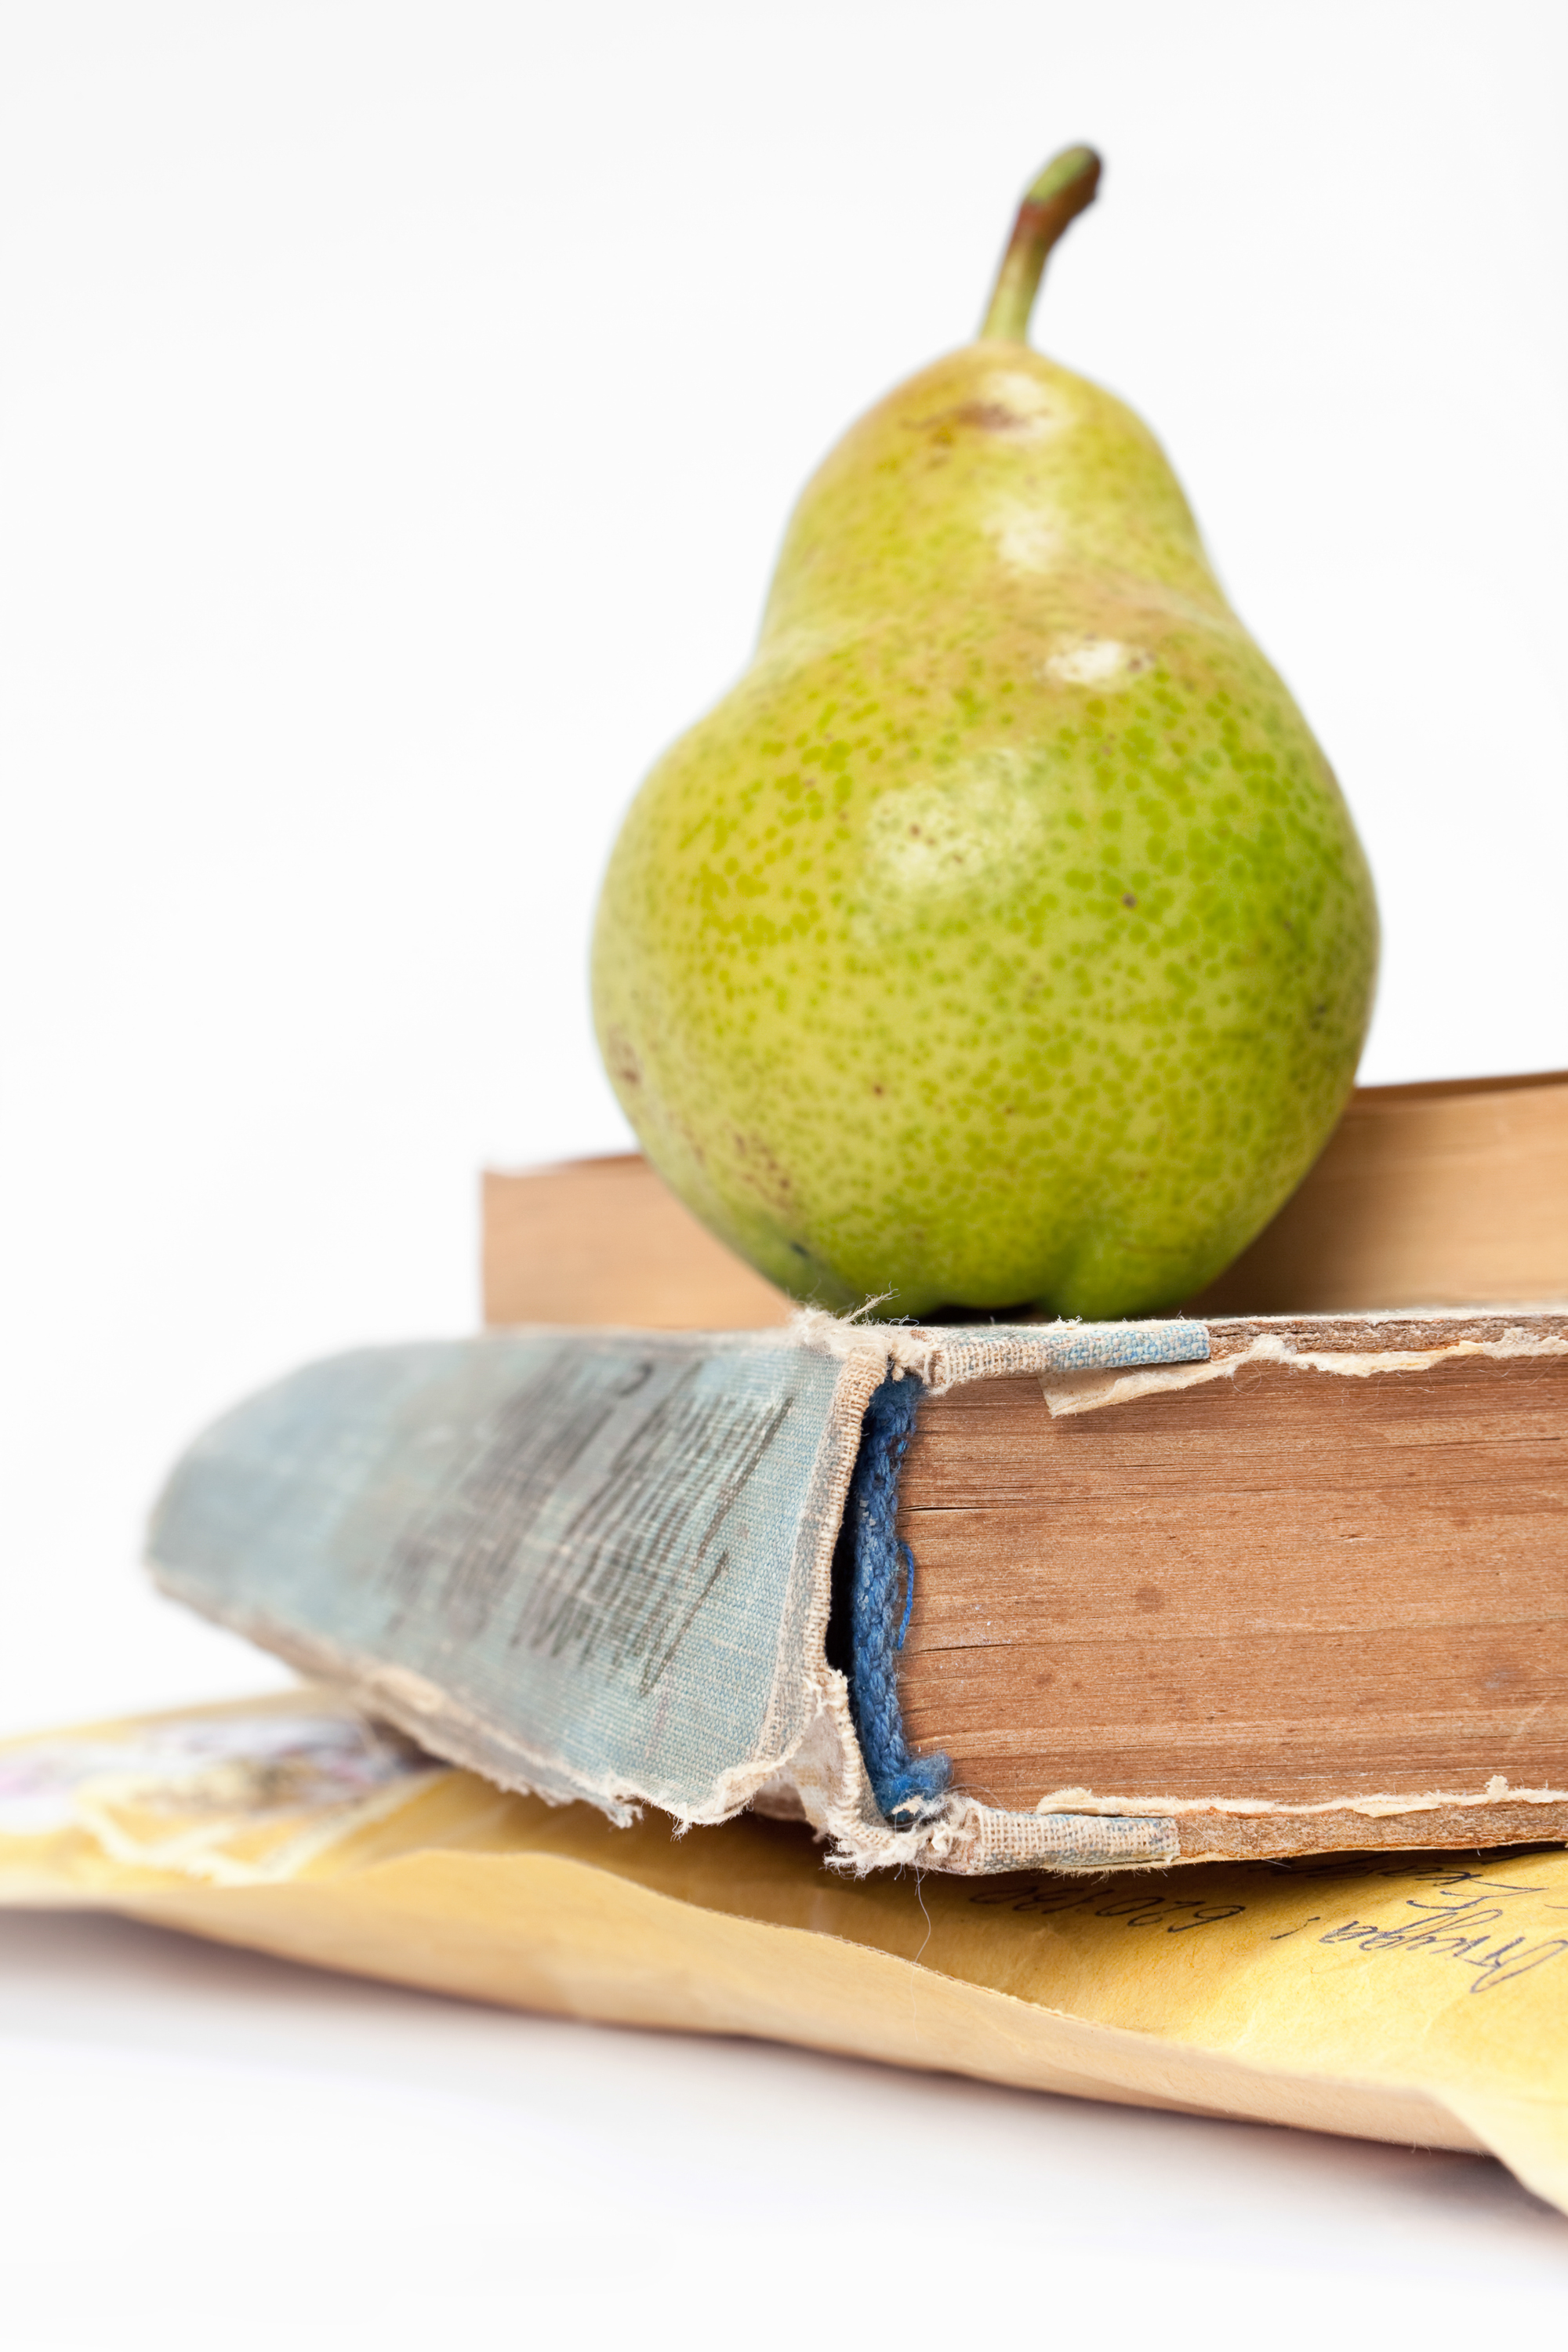 Book and pear photo